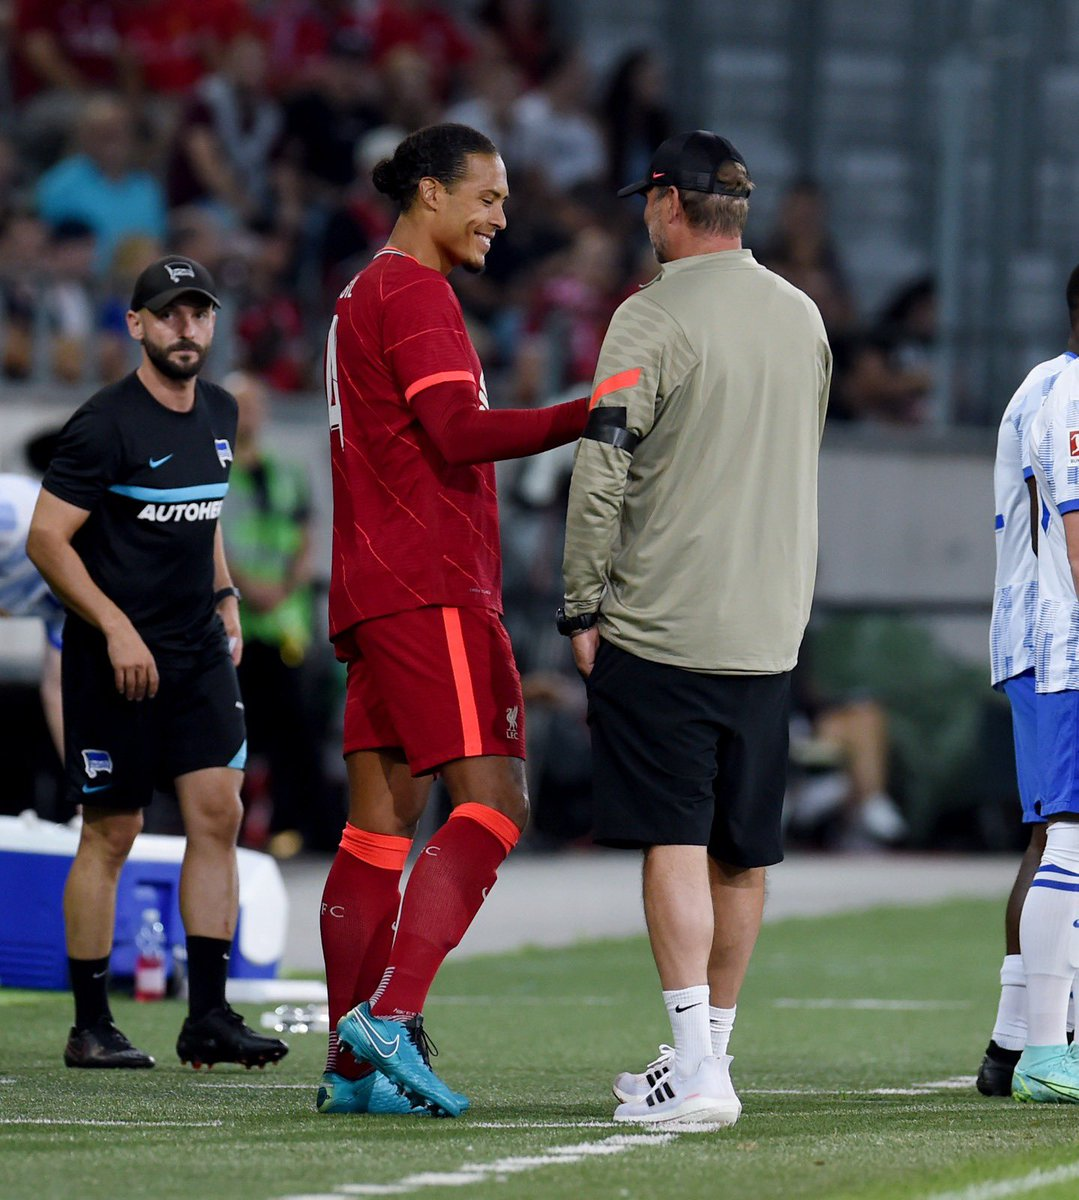 285 days ago, I started on a journey back towards playing. It's hard to express how I am feeling, but it's important to me that I say I feel blessed to have had the support of so many incredible people. The surgeon, my physios, coaches and staff who have been with me in my 1/2